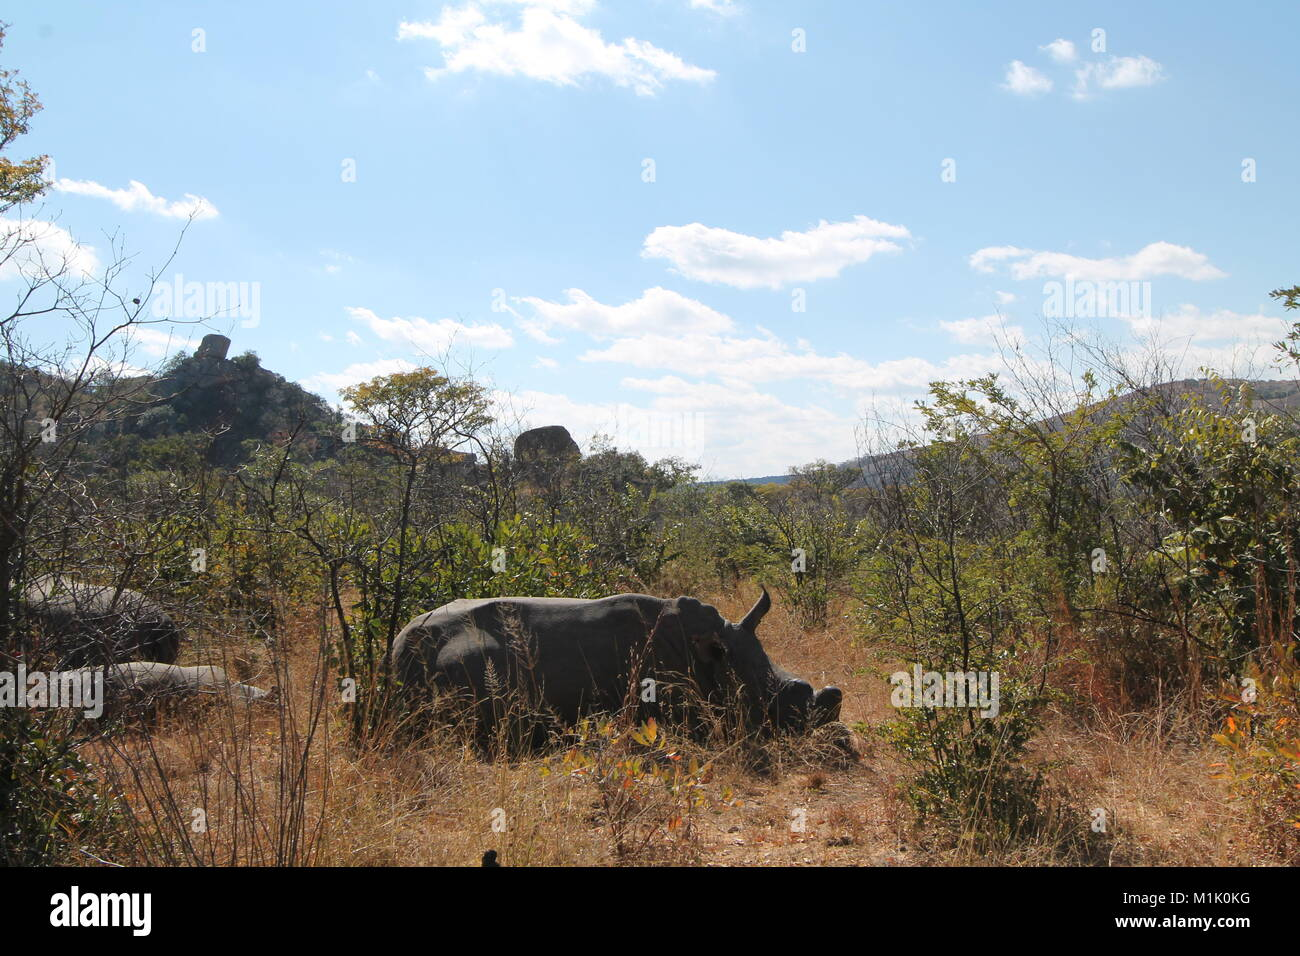 images of africa - Stock Image